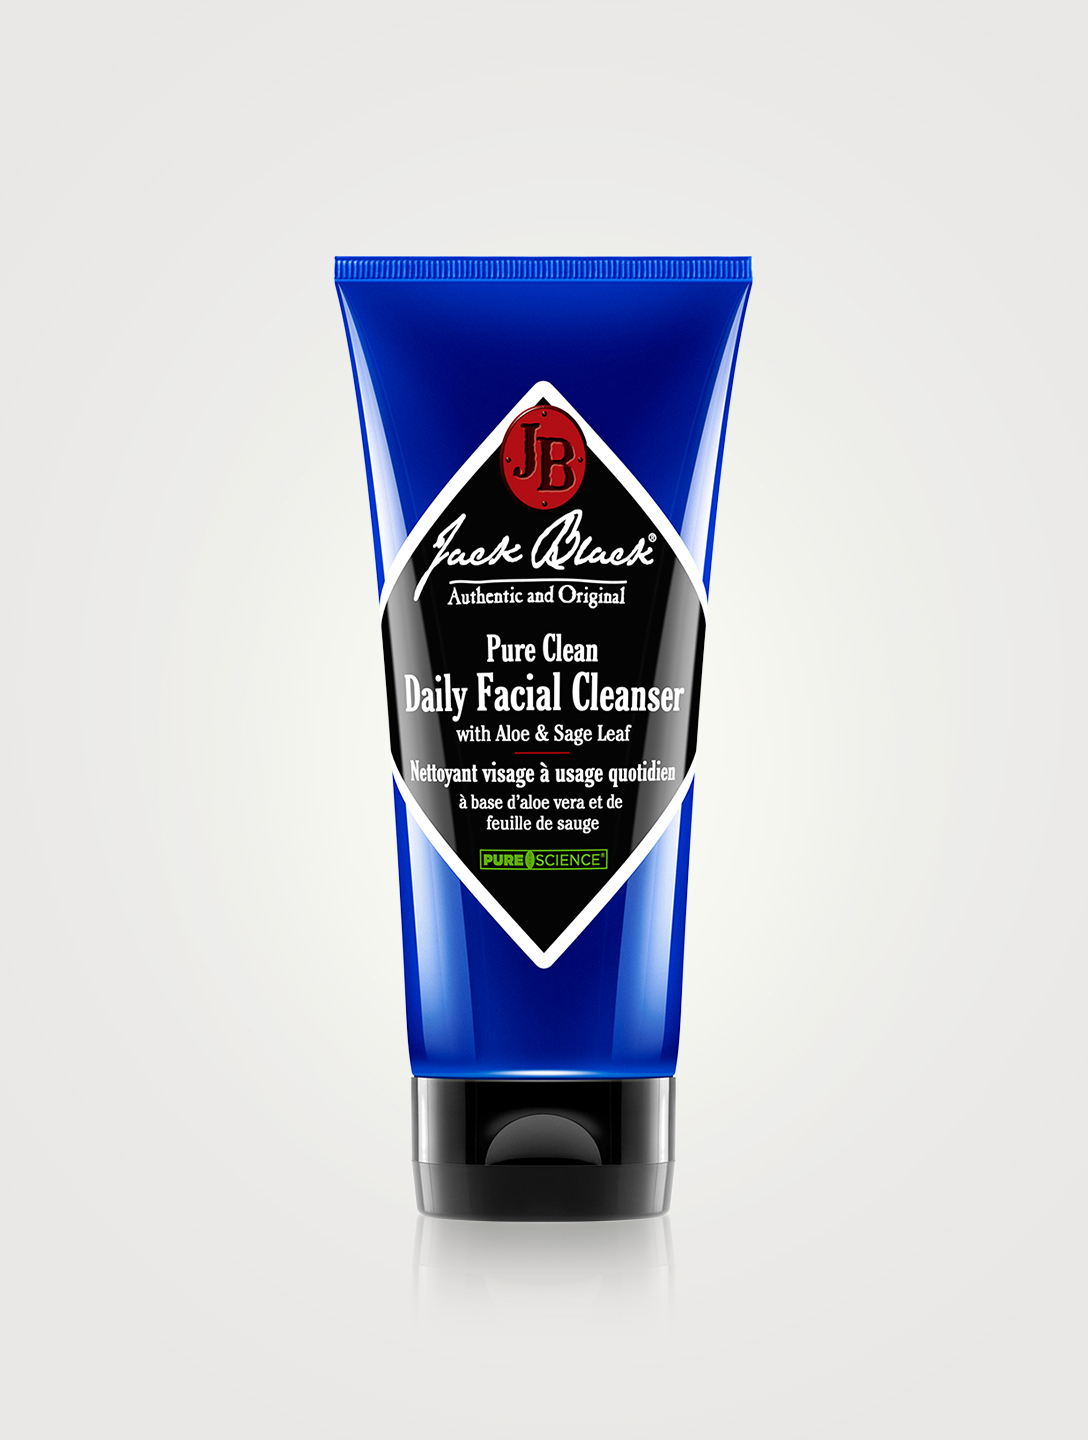 JACK BLACK Pure Clean Daily Facial Cleanser Beauty